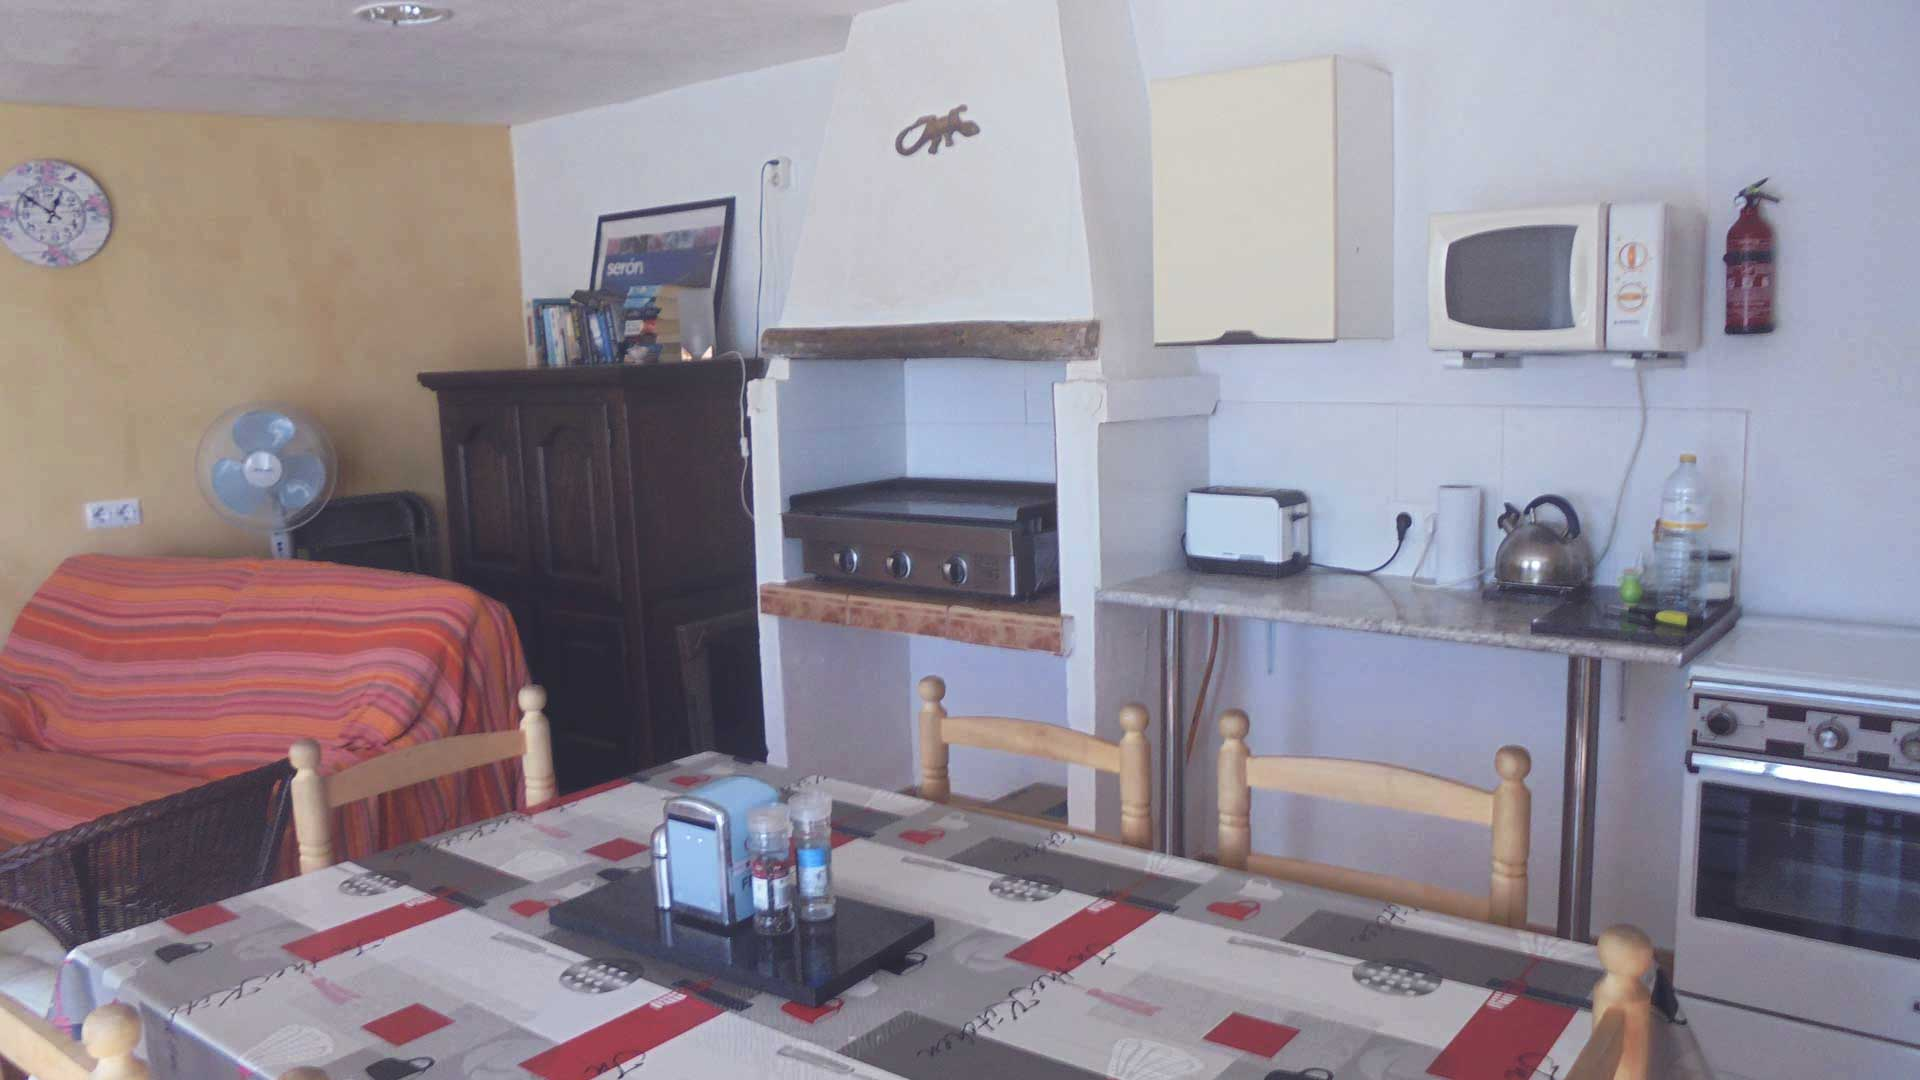 Kitchen Diner | Casa Tranquila Seron | Almeria | Spain | Apartments to Rent